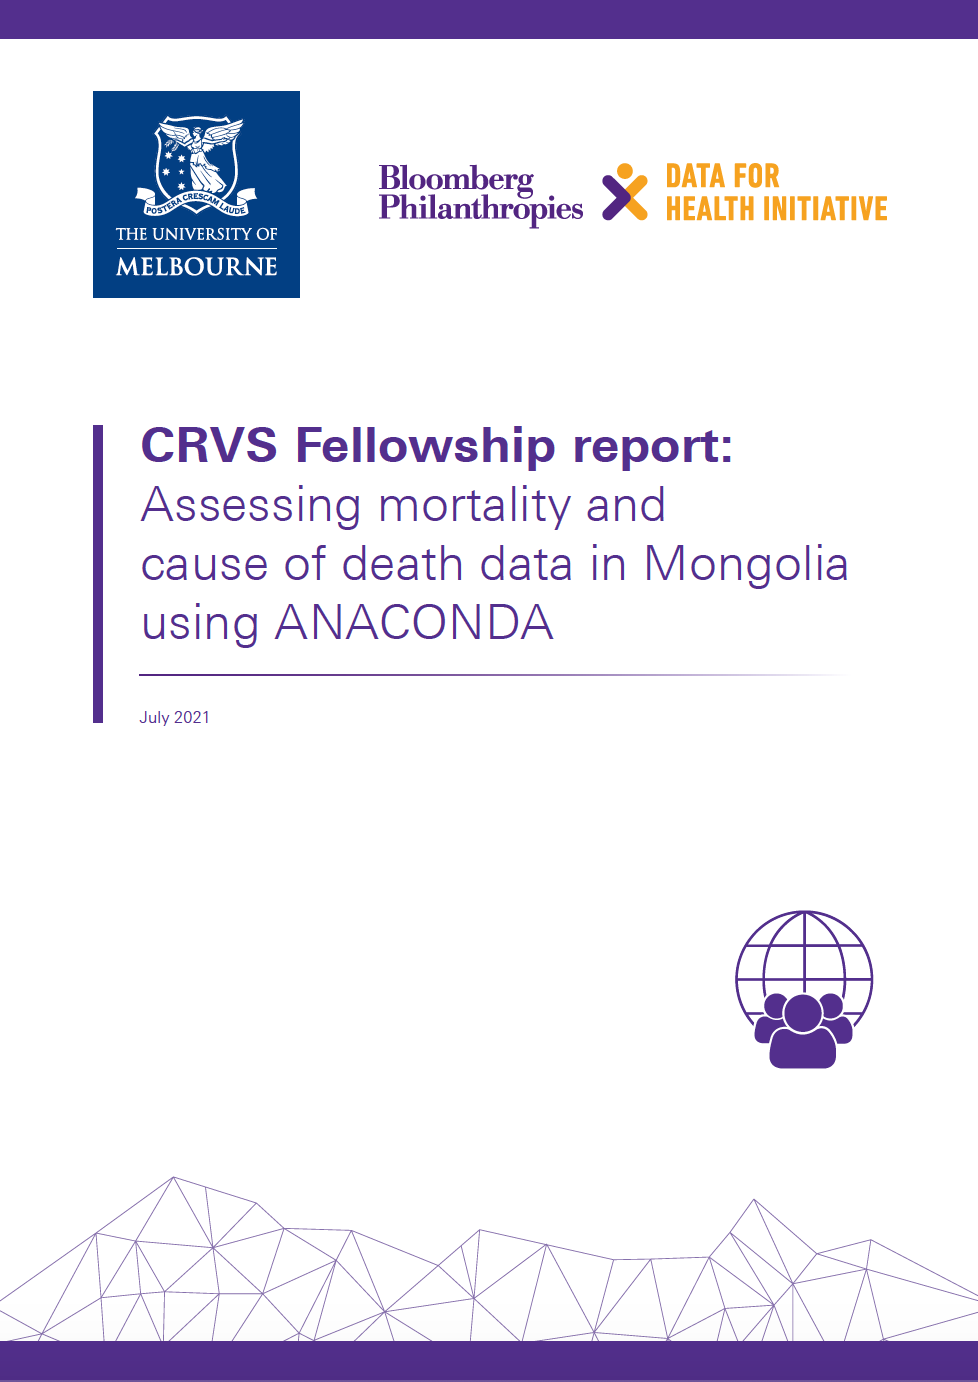 CRVS Fellowship report: Assessing mortality and cause of death data in Mongolia using ANACONDA thumbnail